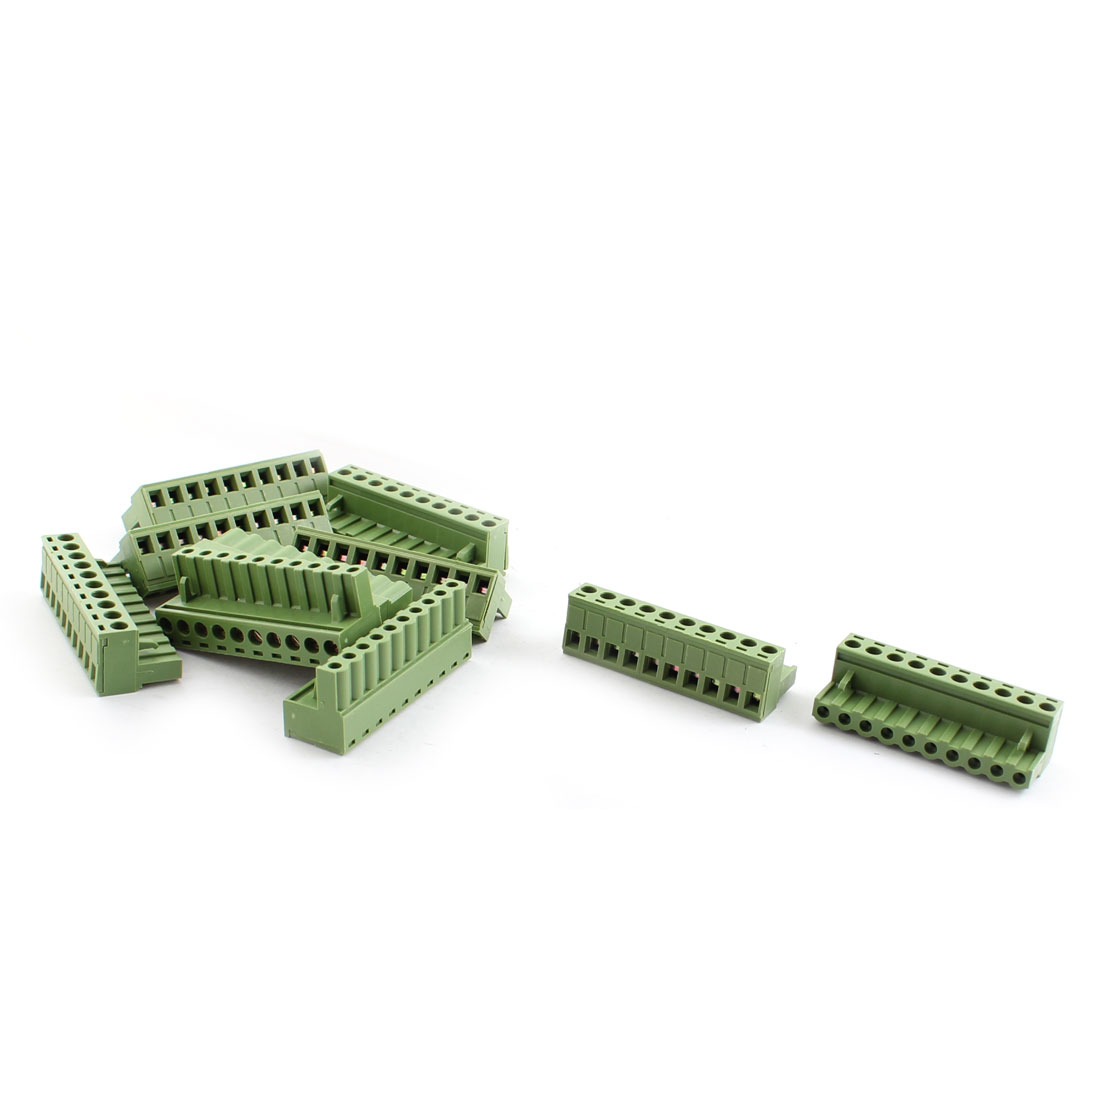 10 Pcs 5.08mm Pitch 10Pin 90 Degree Pluggable in PCB Mount Screw Terminal Block Connector 300V 10A